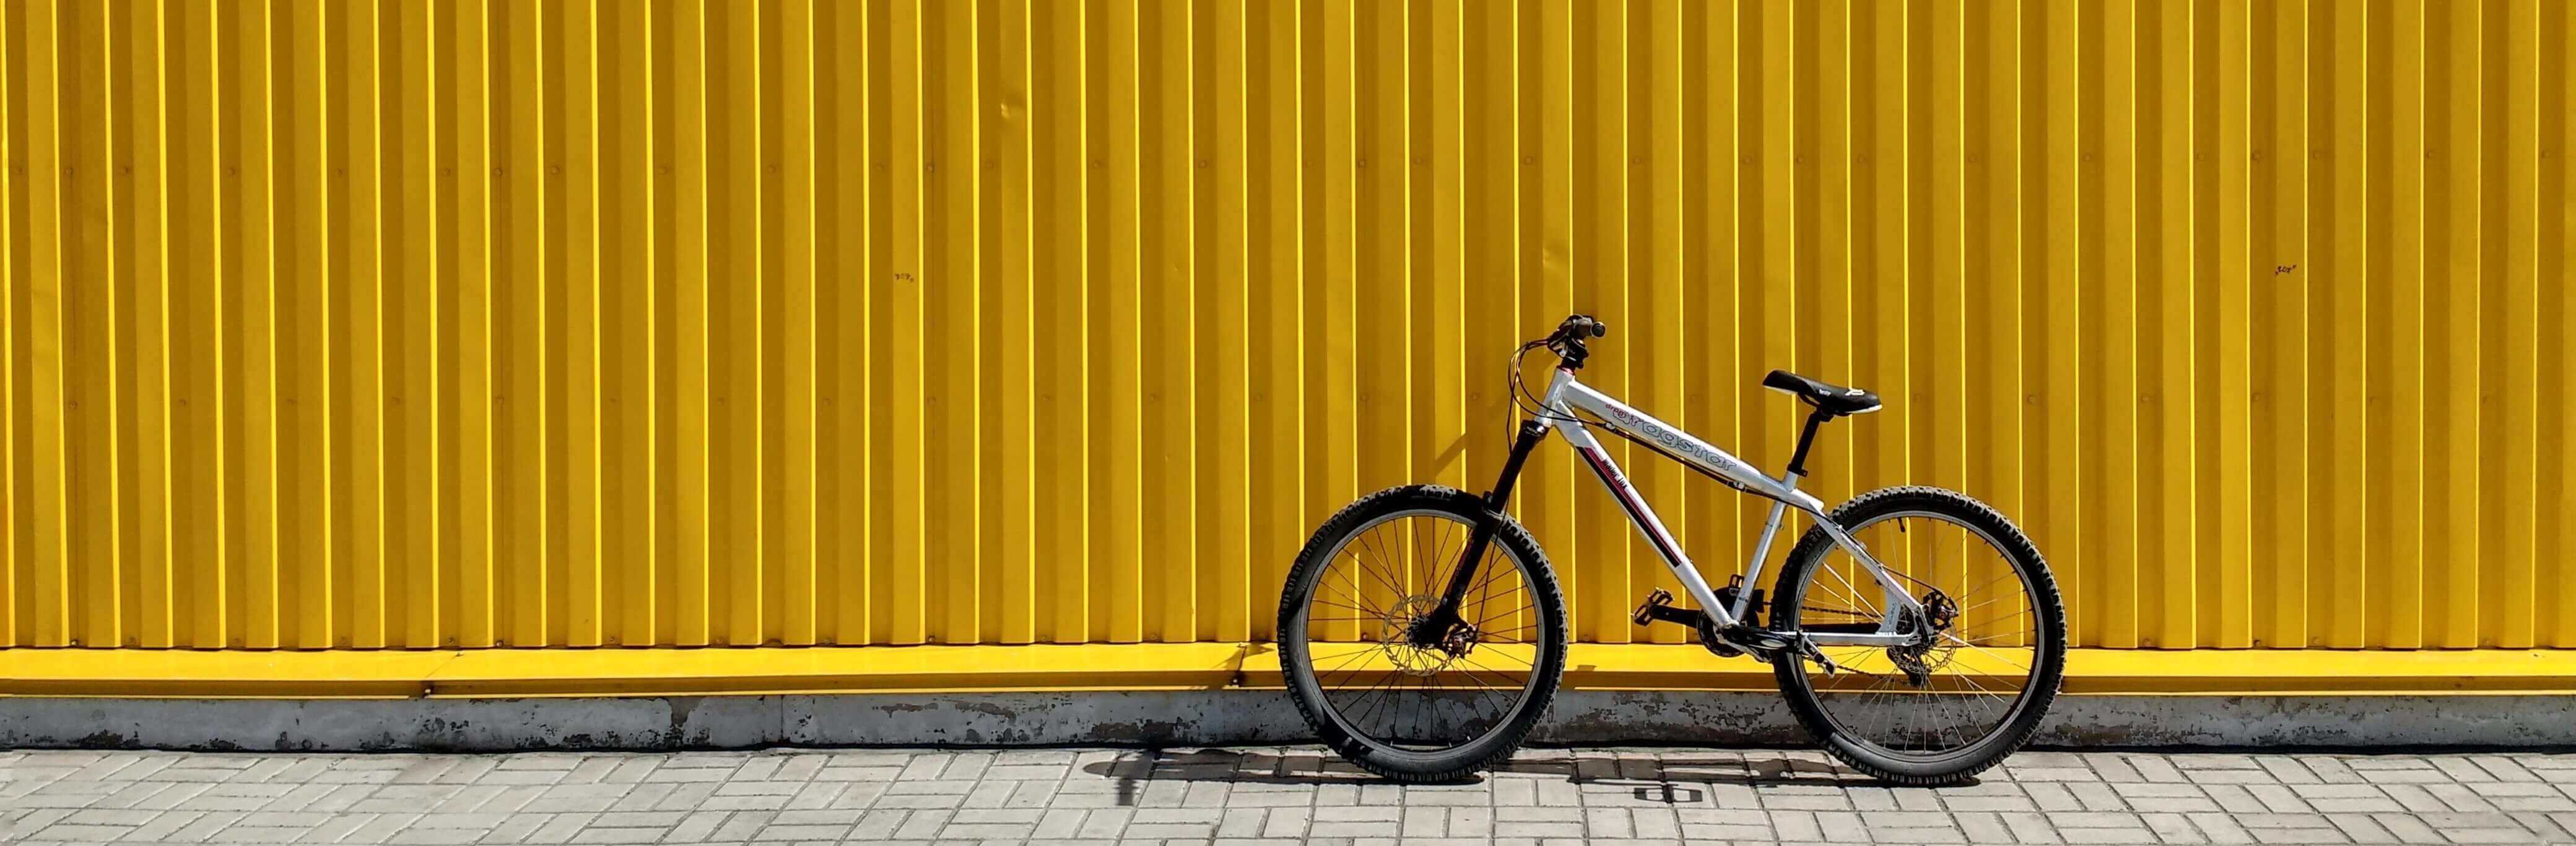 A bike leaning against a yellow wall, decorative image.